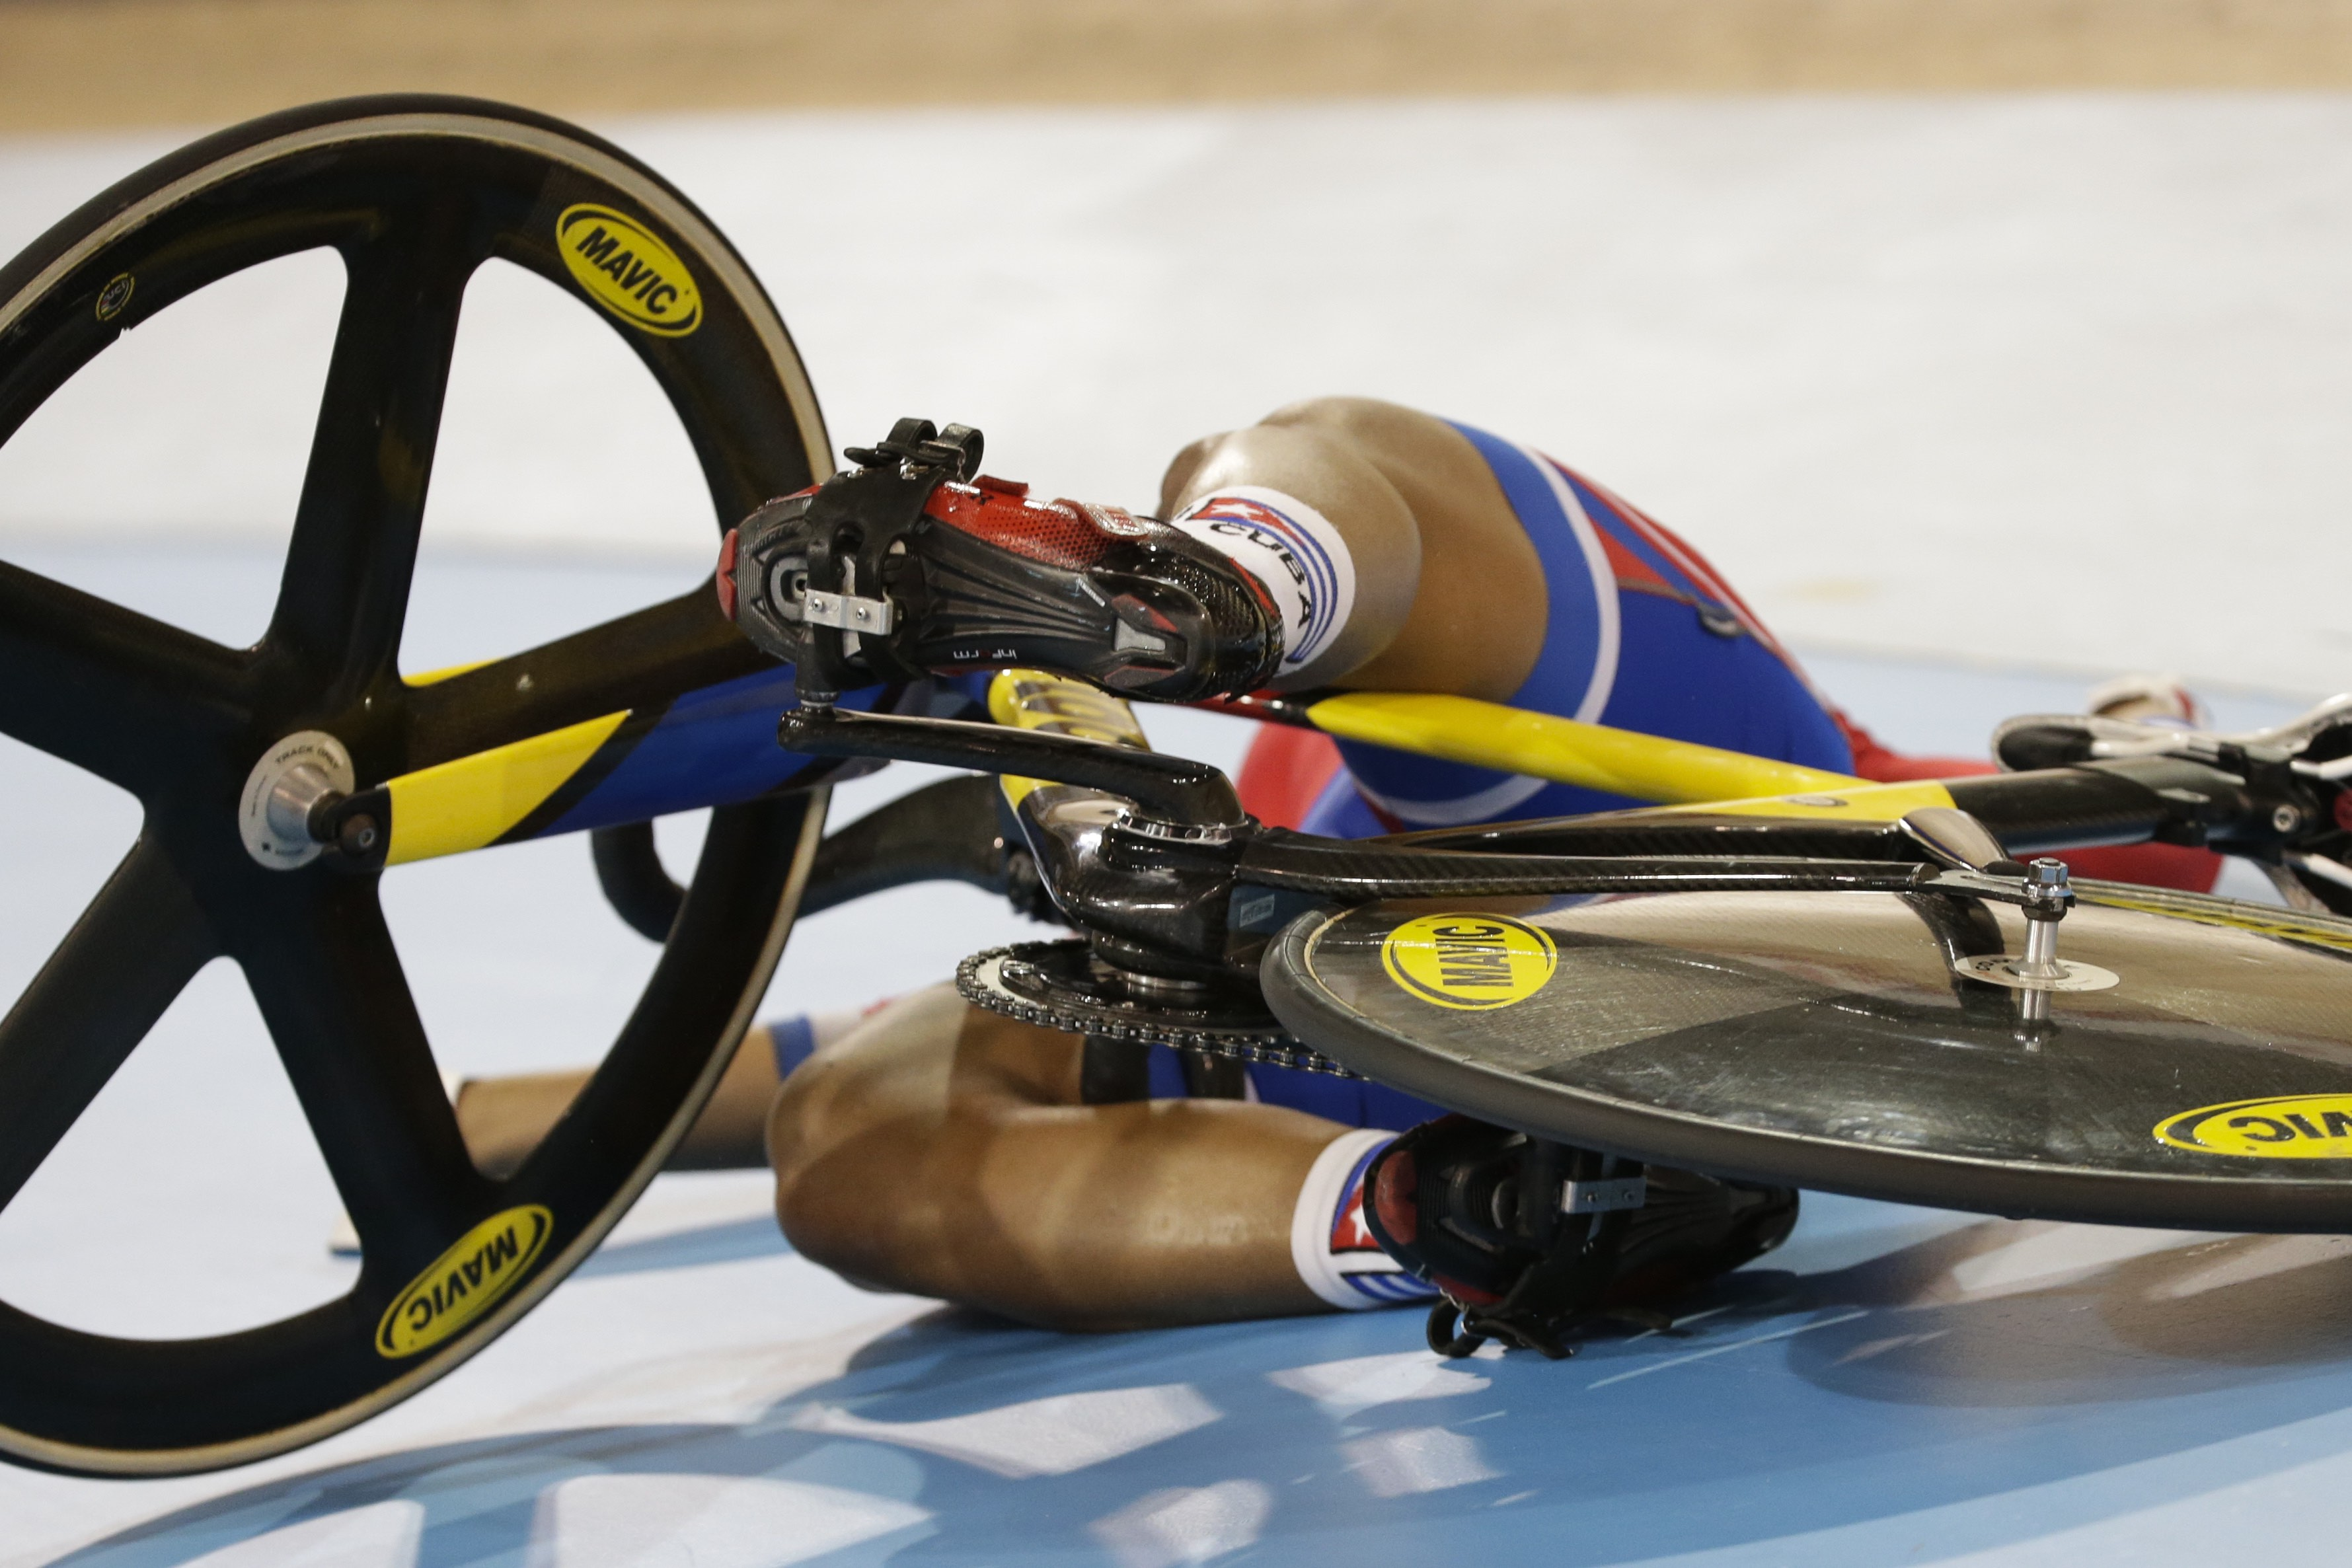 XXX's XX pedals during the XXmen's XX track cycling competition at the Pan Am Games in Milton, Ontario, Saturday, July 18, 2015. (AP Photo/Felipe Dana)